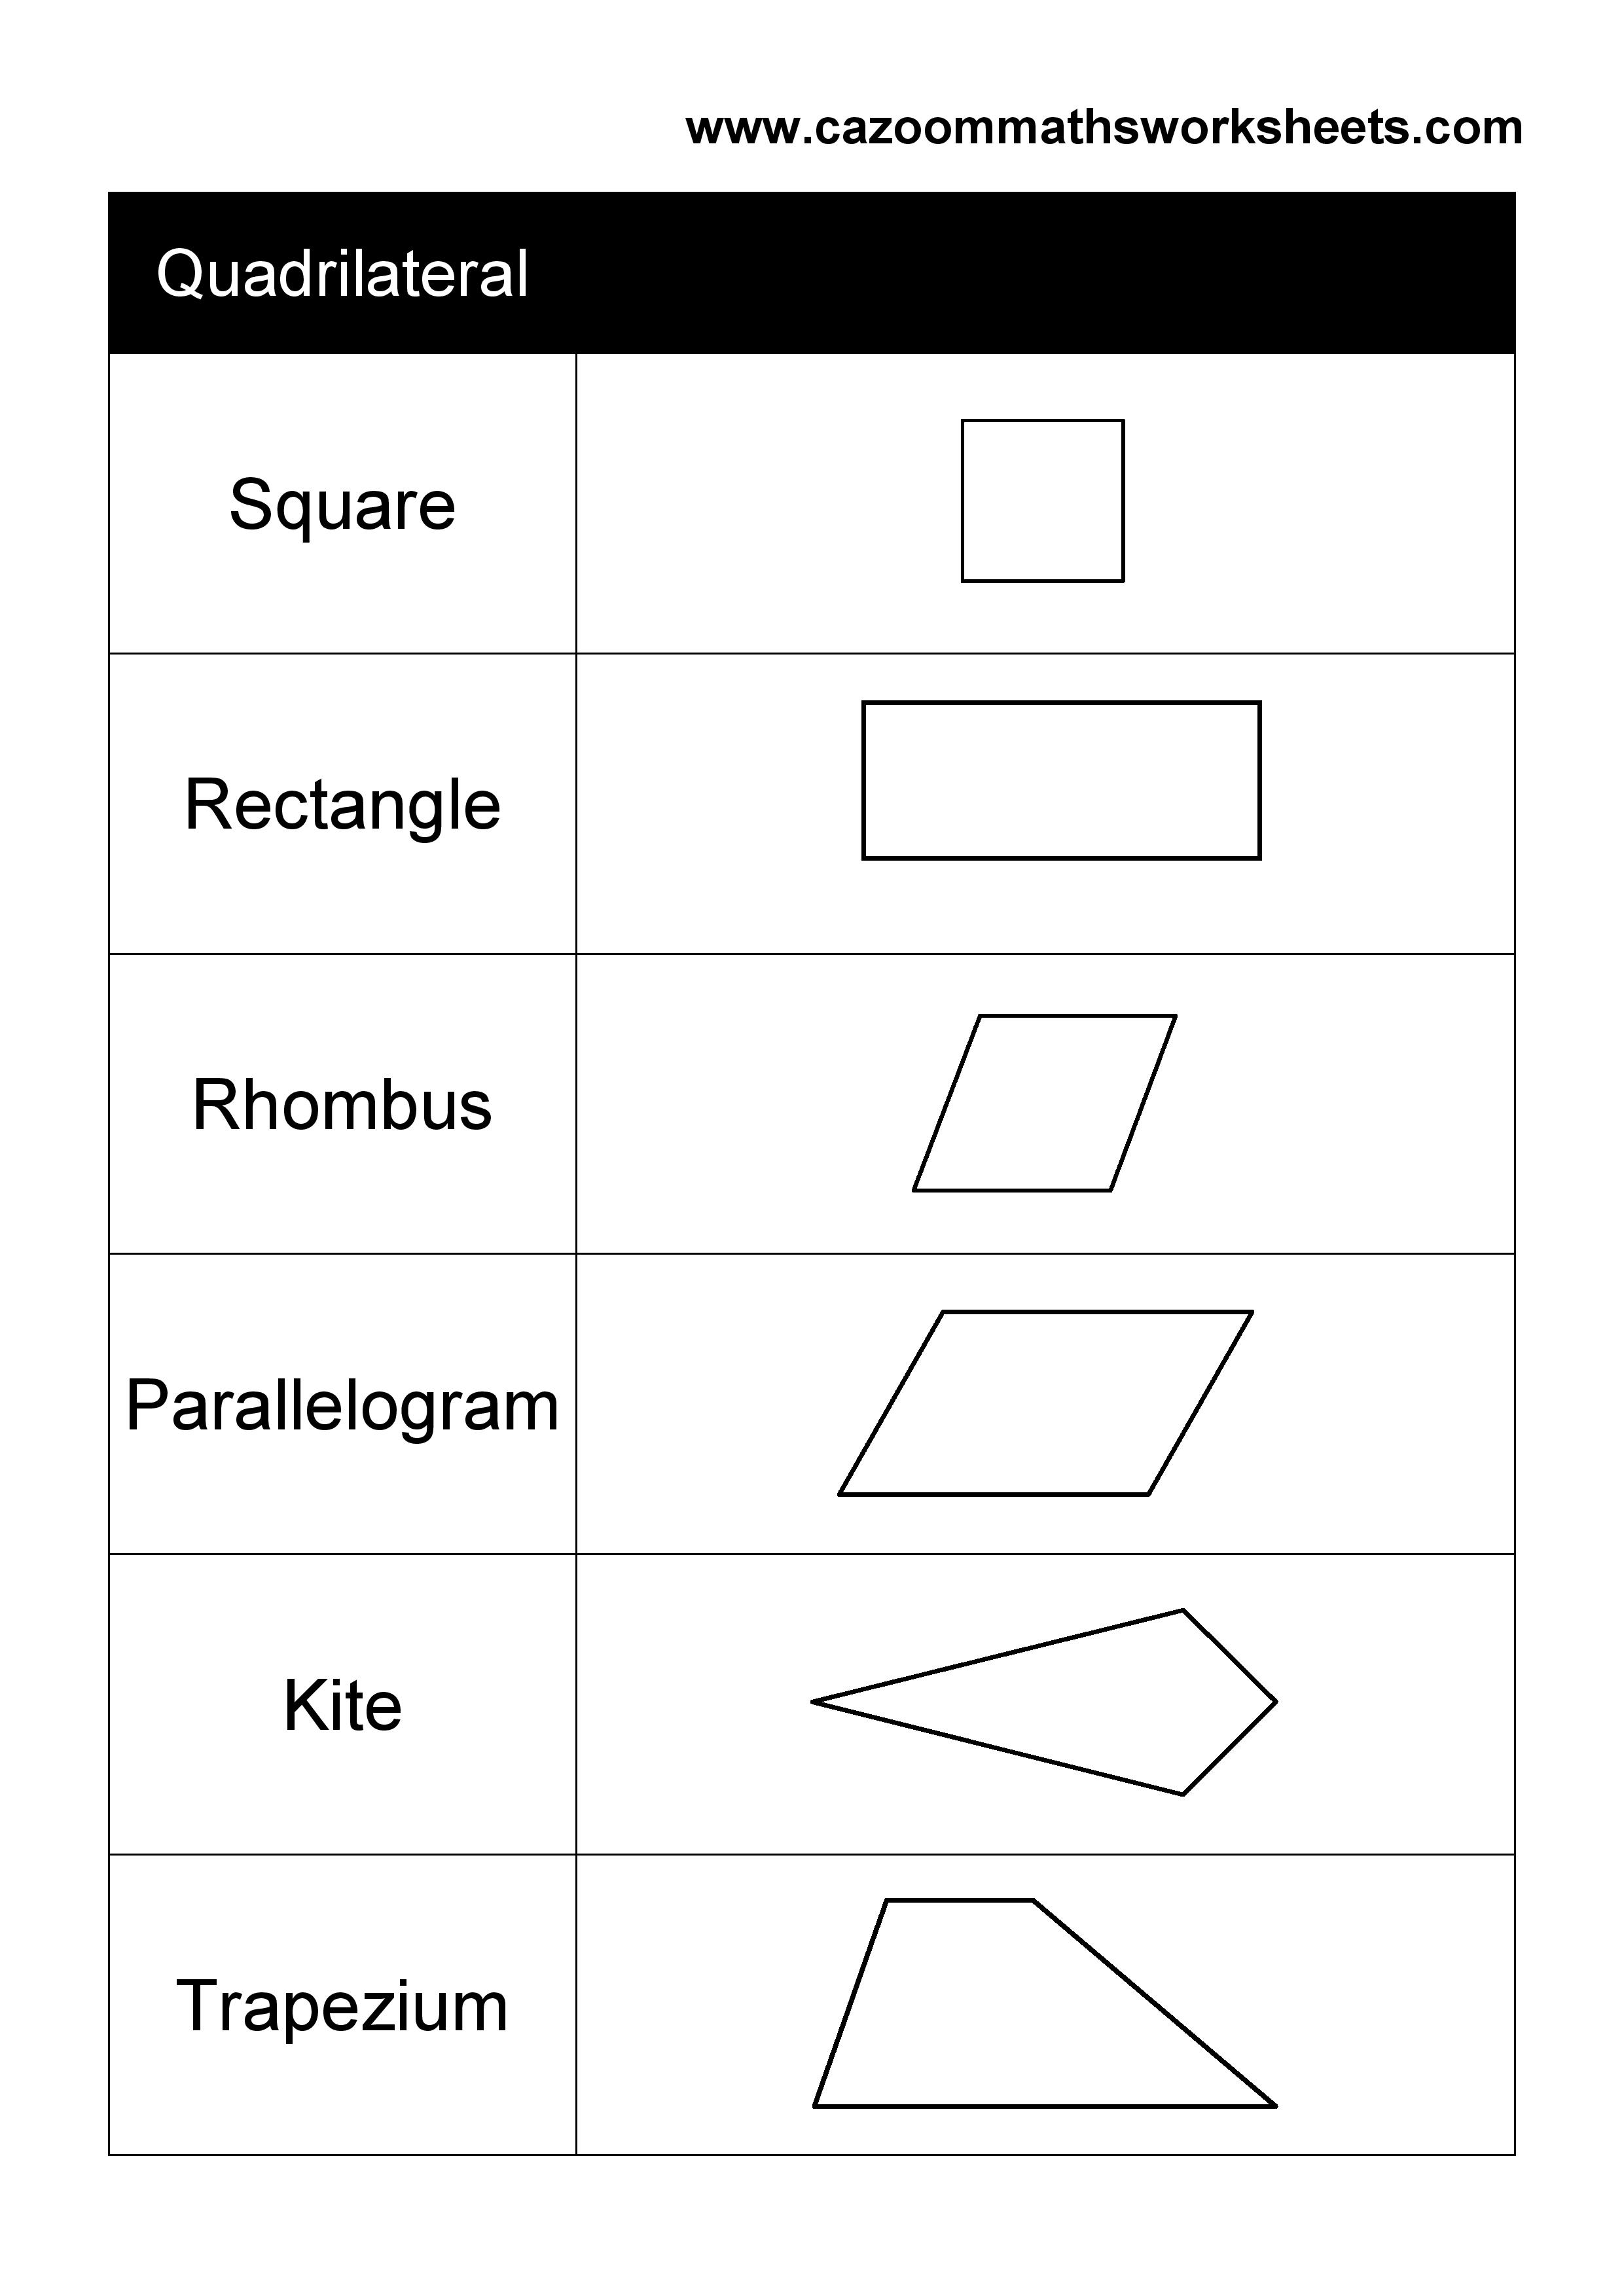 blank quadrilateral tree diagram 24v trolling motor wiring 13 best images of printable worksheets on quadrilaterals